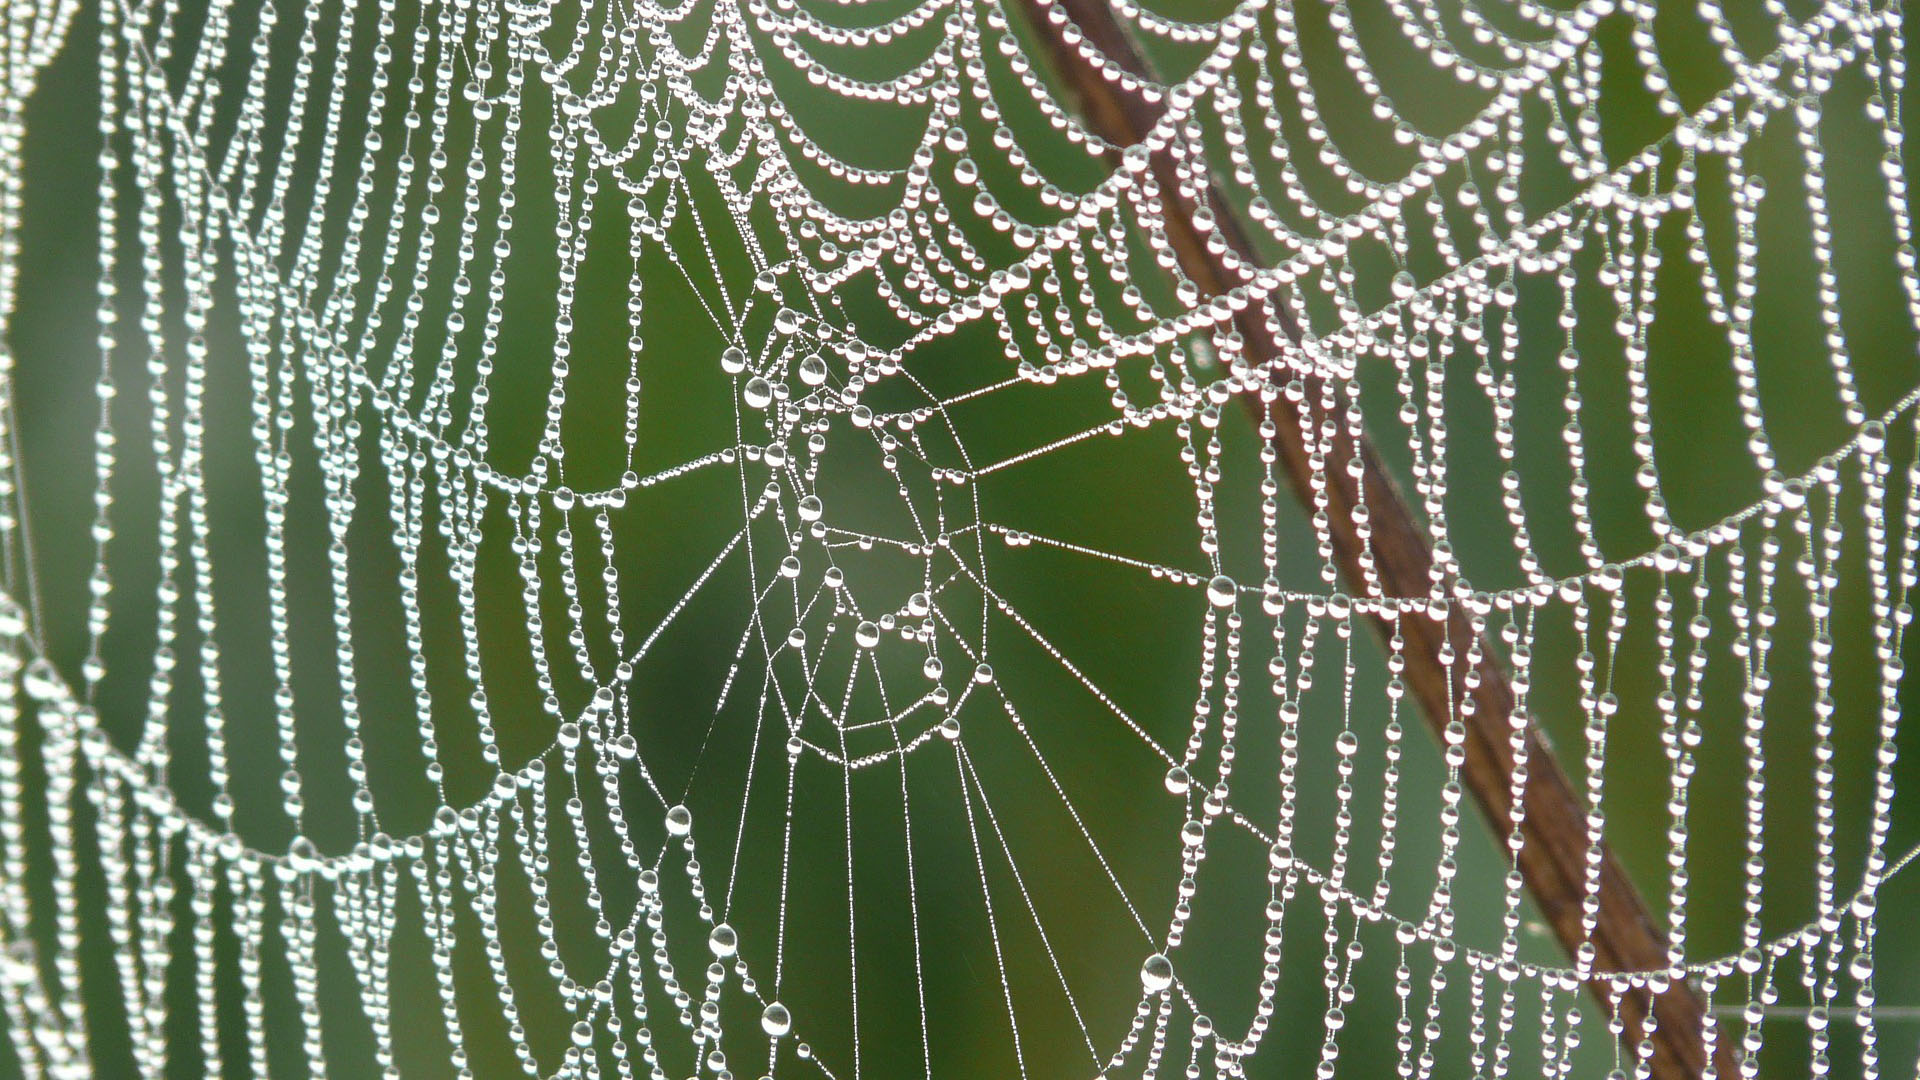 Detail of dew drops on a cobweb